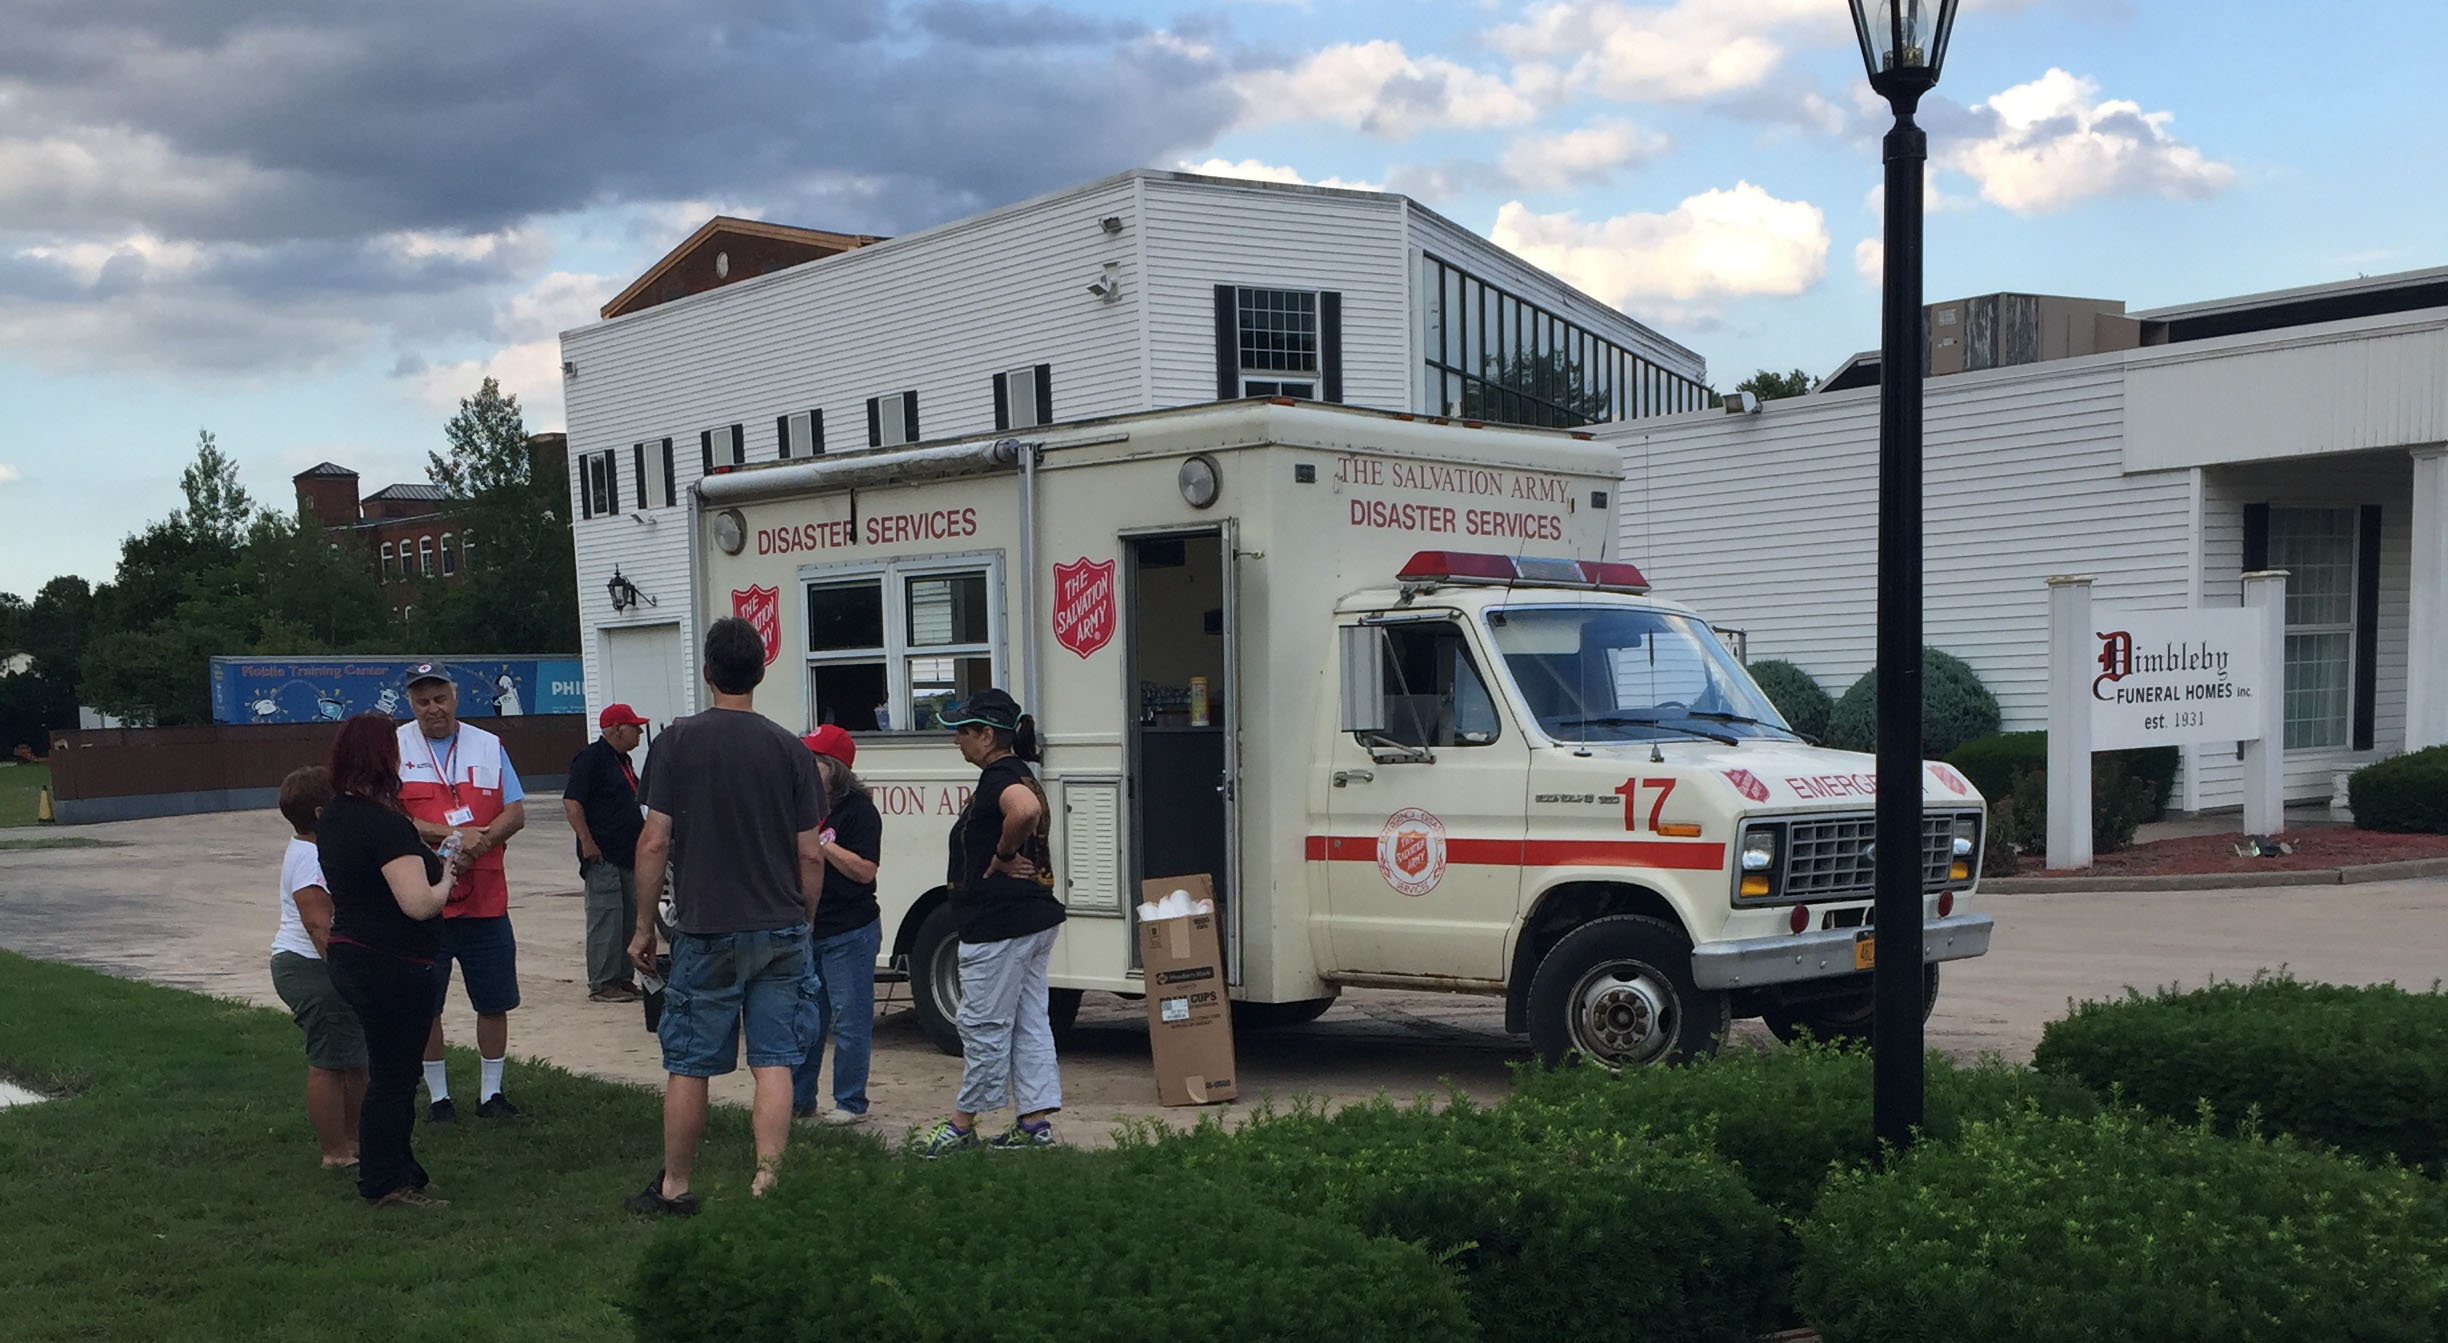 empire state division the salvation army upstate new york - HD2448×1343